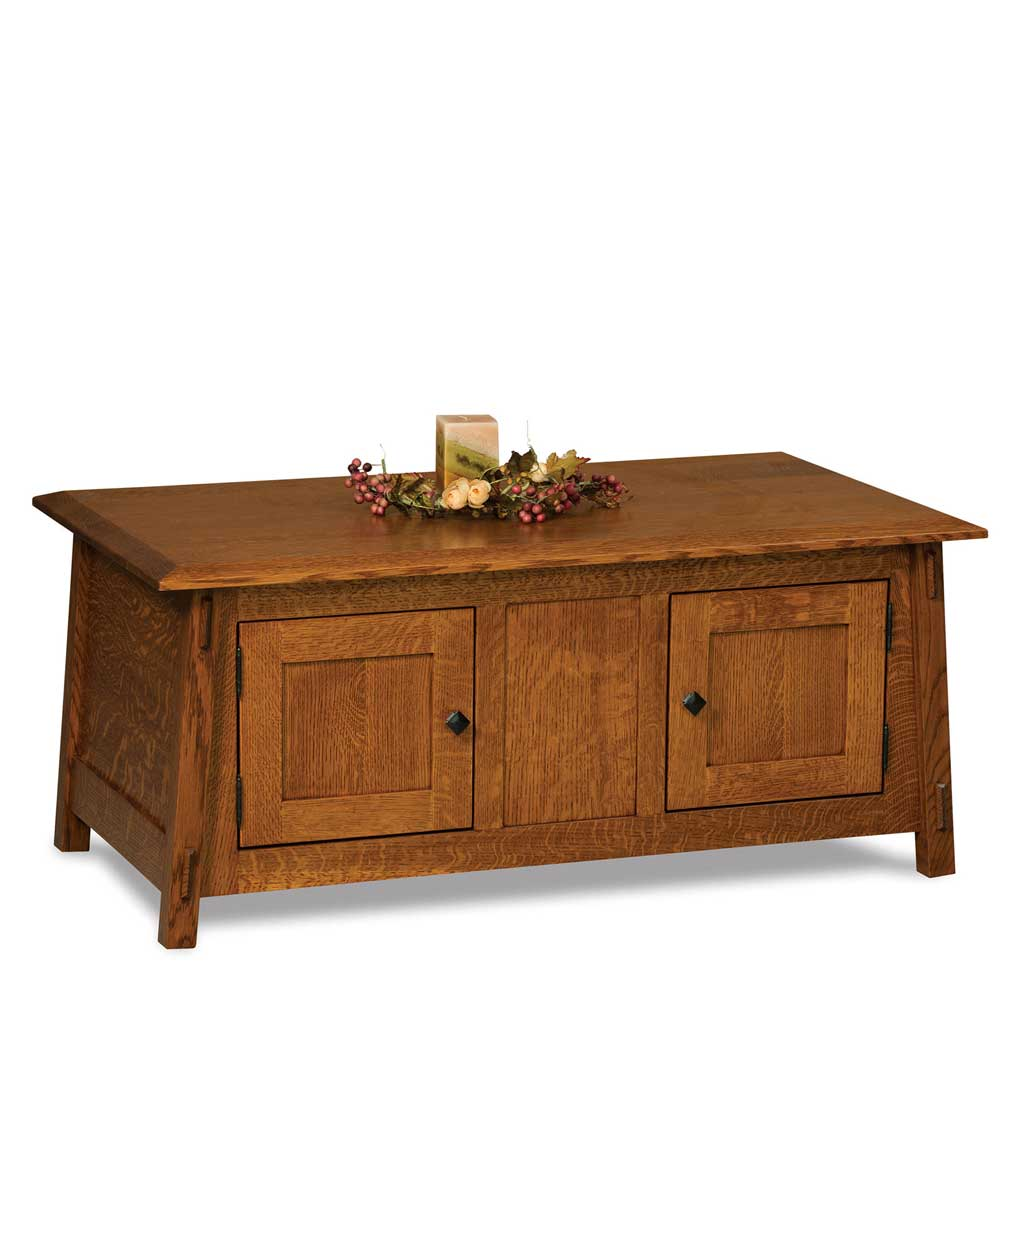 Colbran enclosed coffee table amish direct furniture for Amish furniture